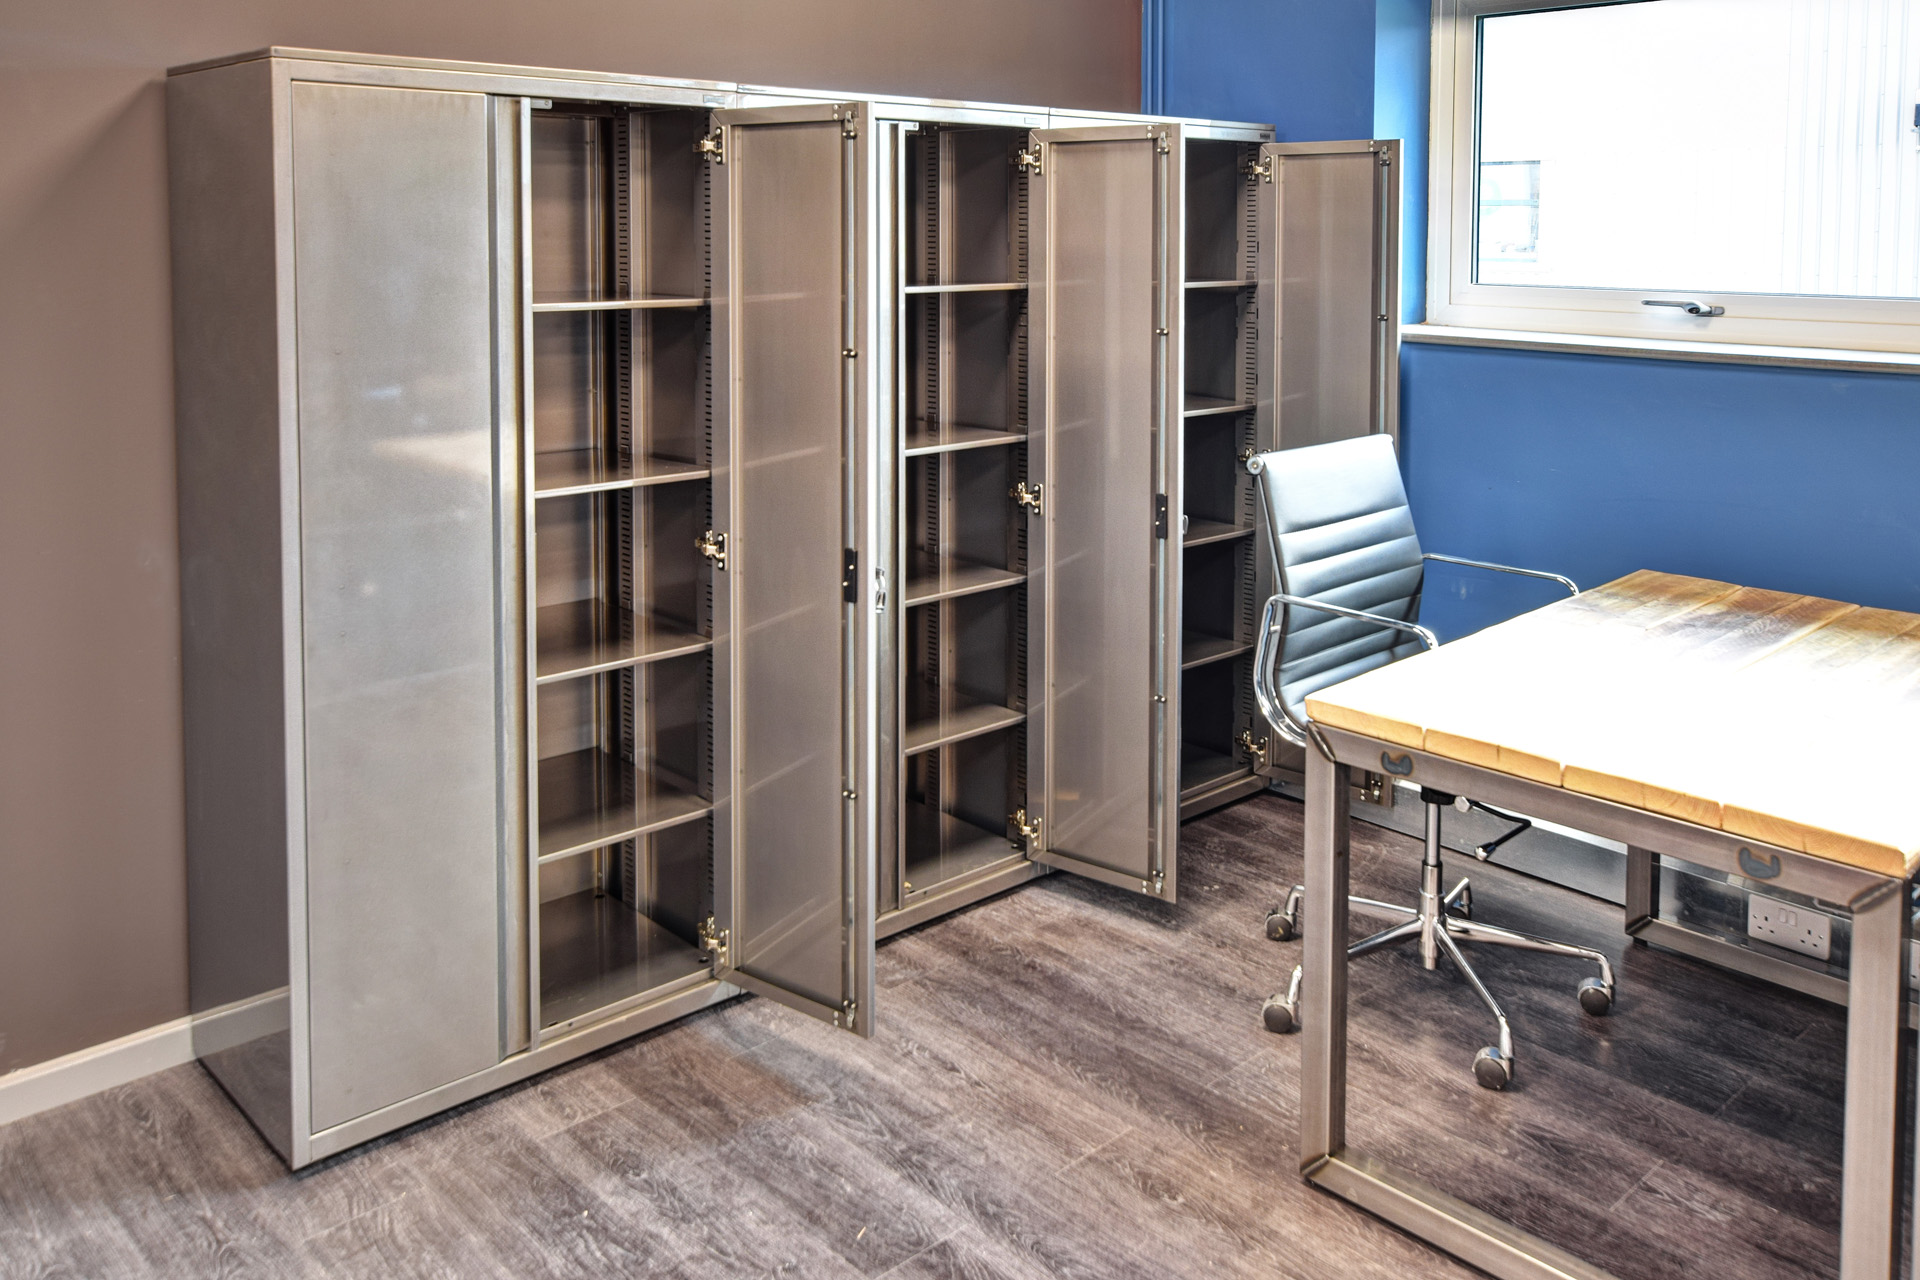 Flexiform's Ferro Style Desks and Storage